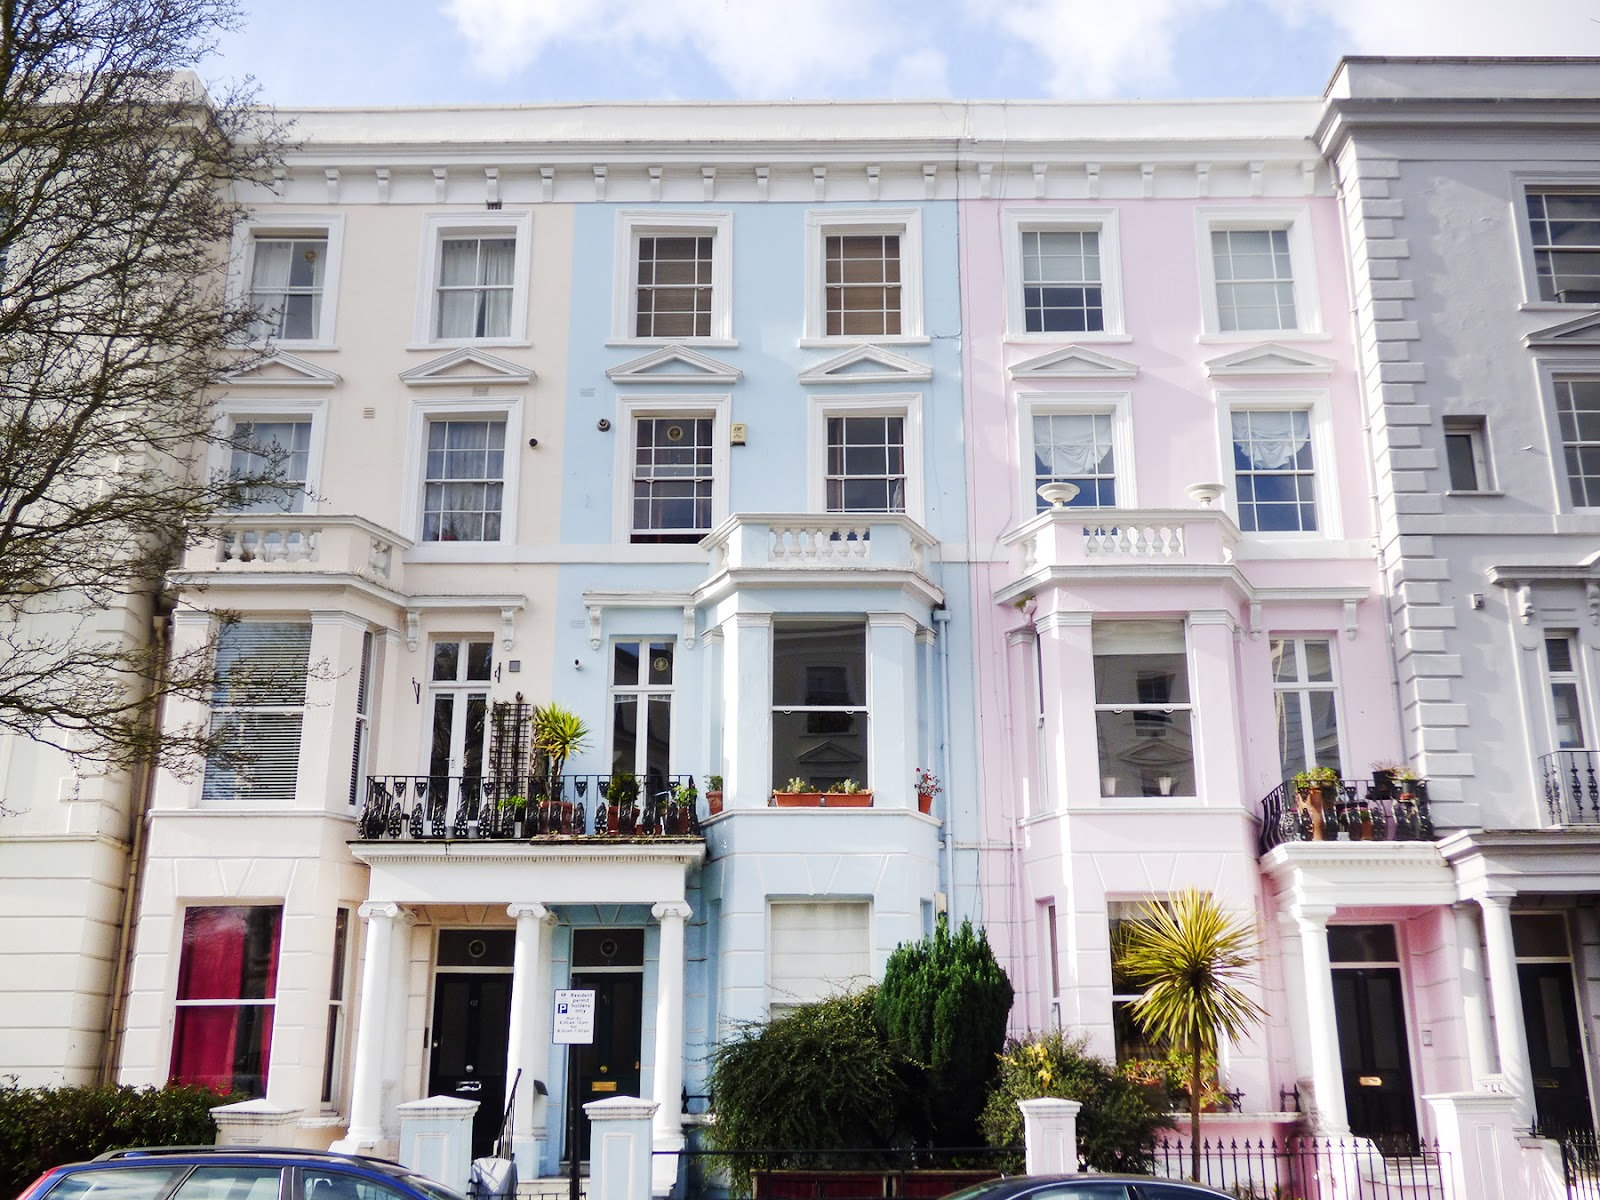 The colorful houses of notting hill paige taylor evans for House notting hill